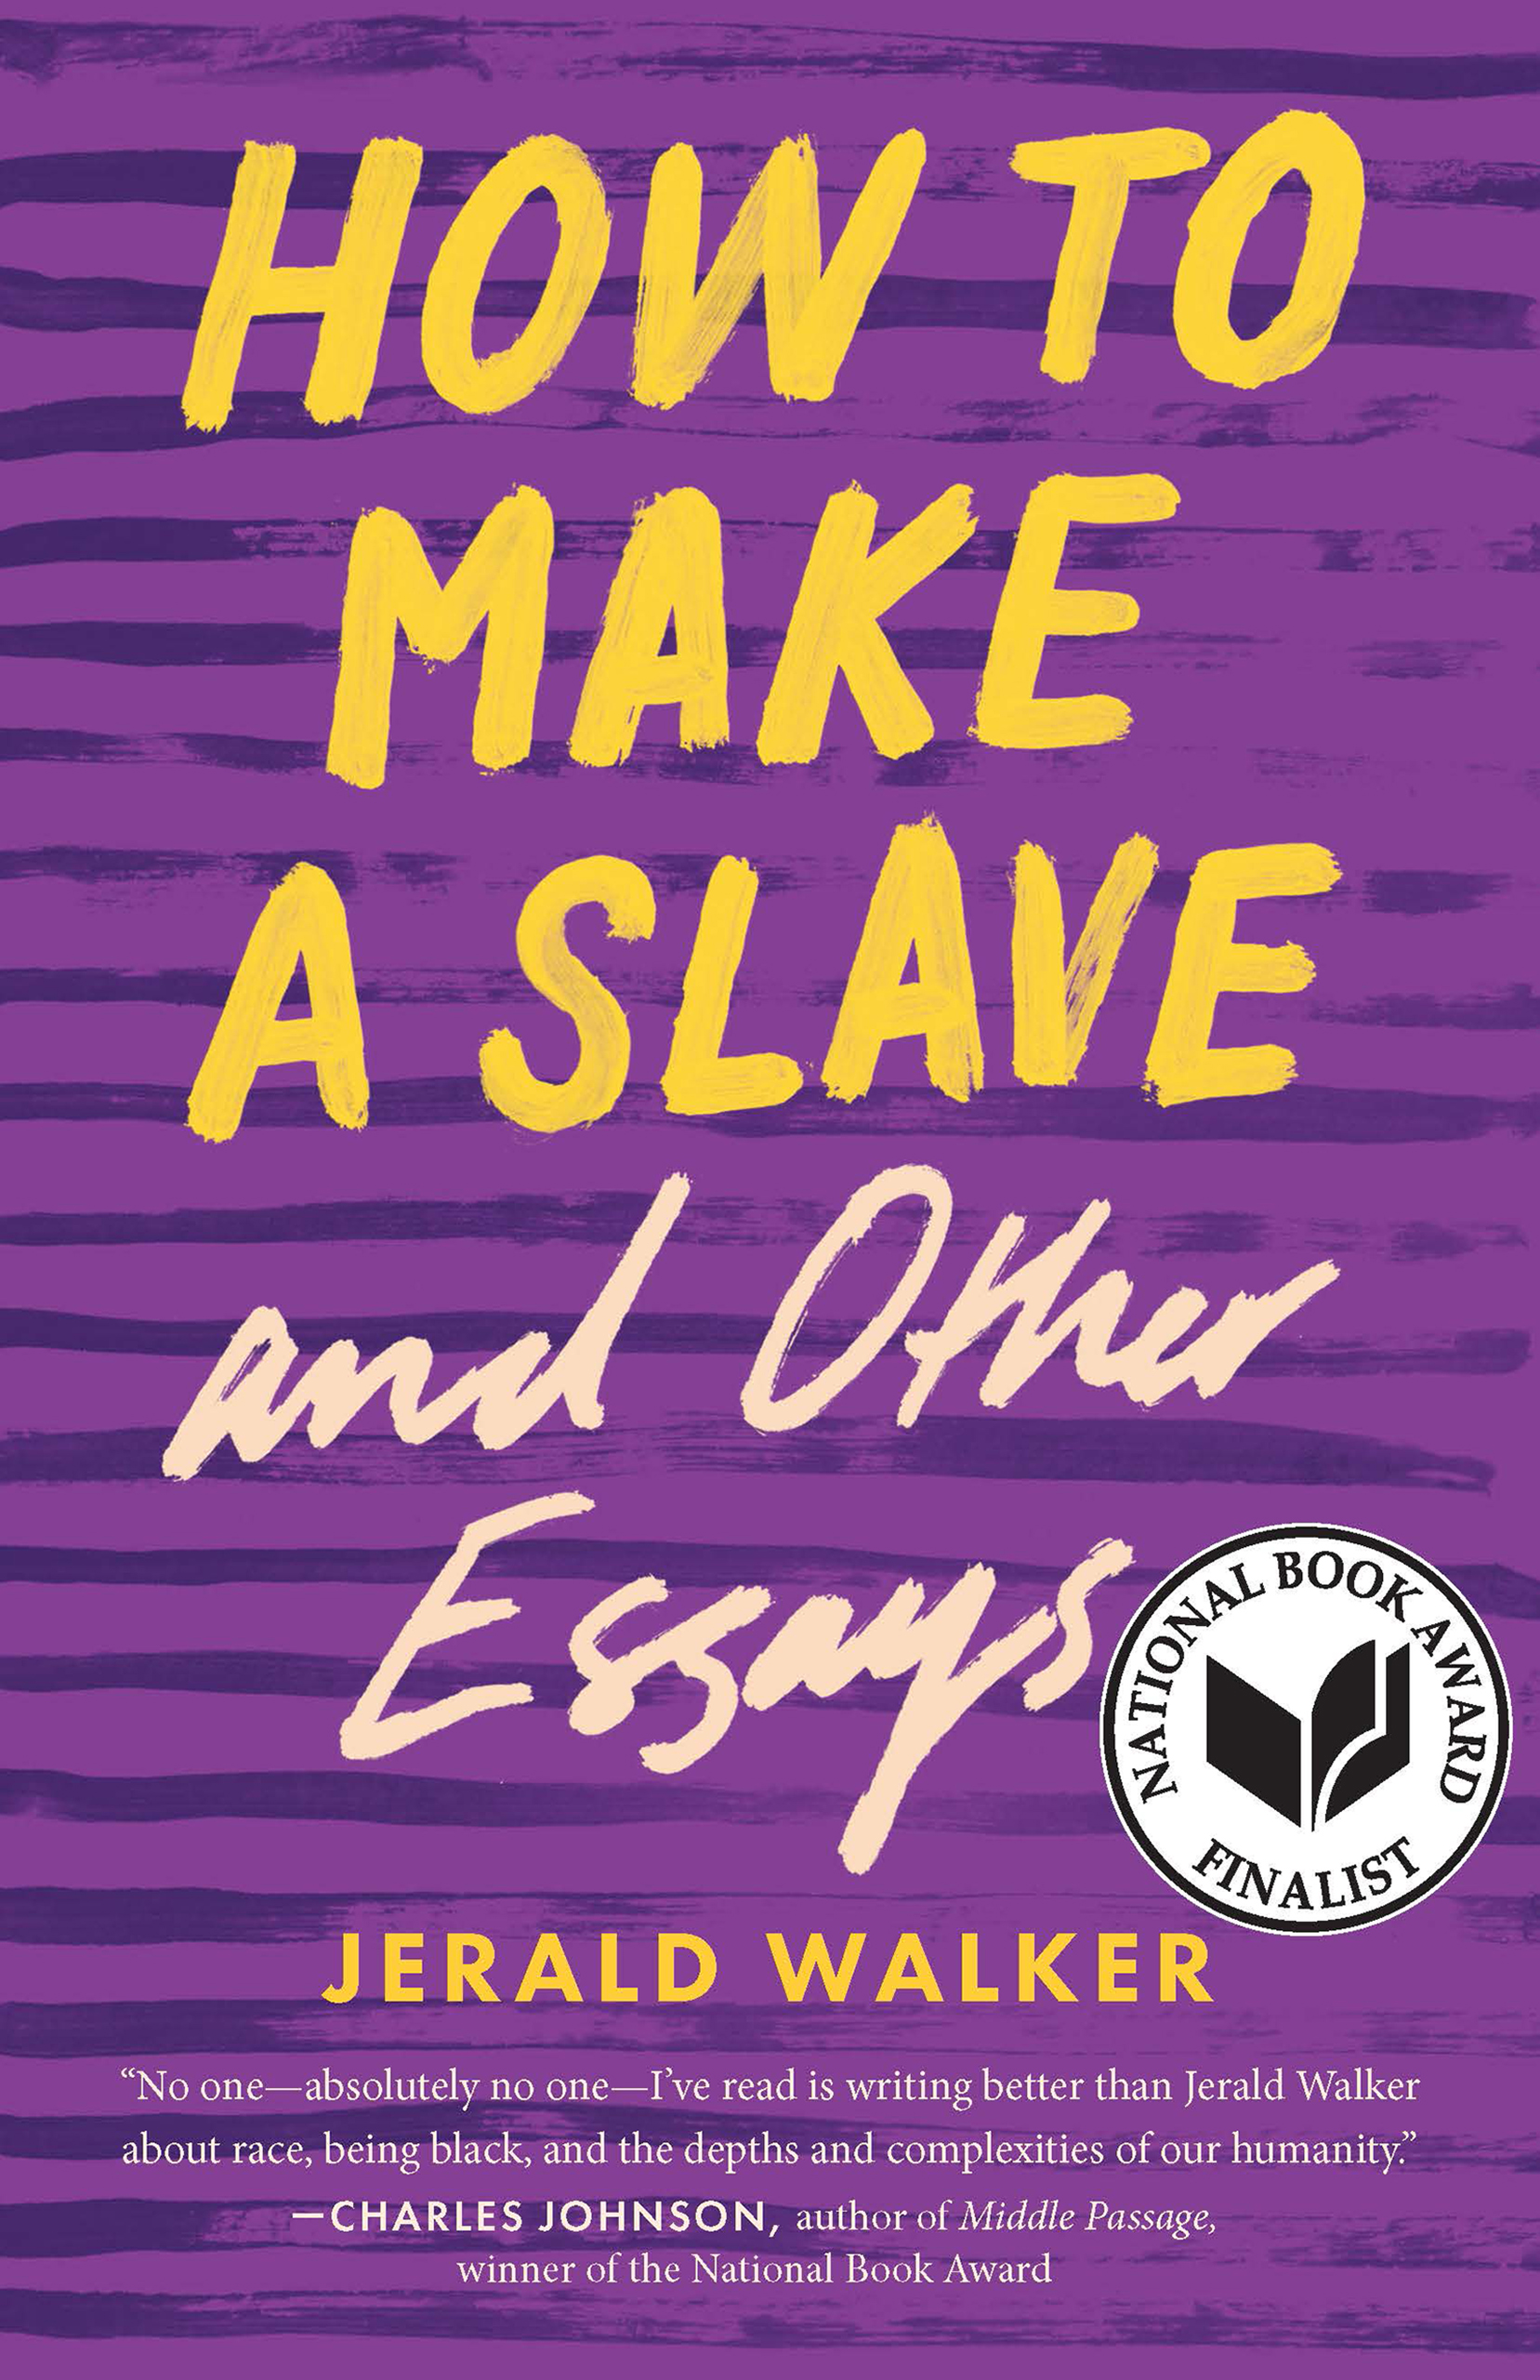 How to Make a Slave and Other Essays